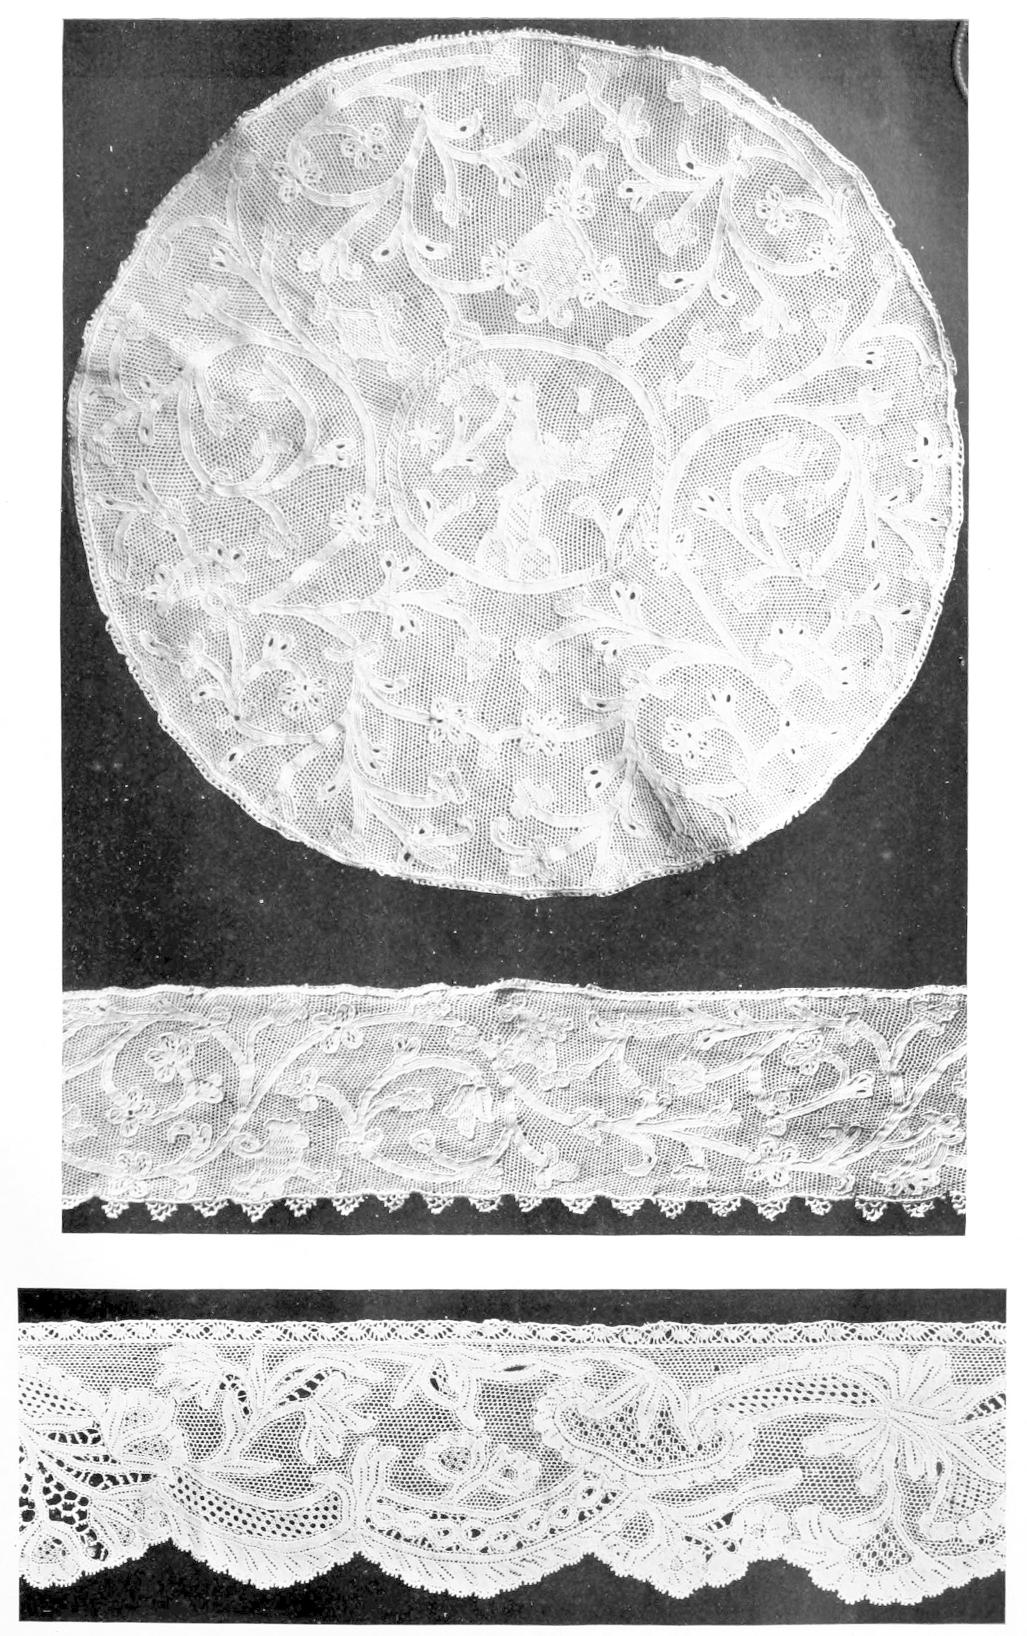 Circular cover and two lace borders adb1609e87b